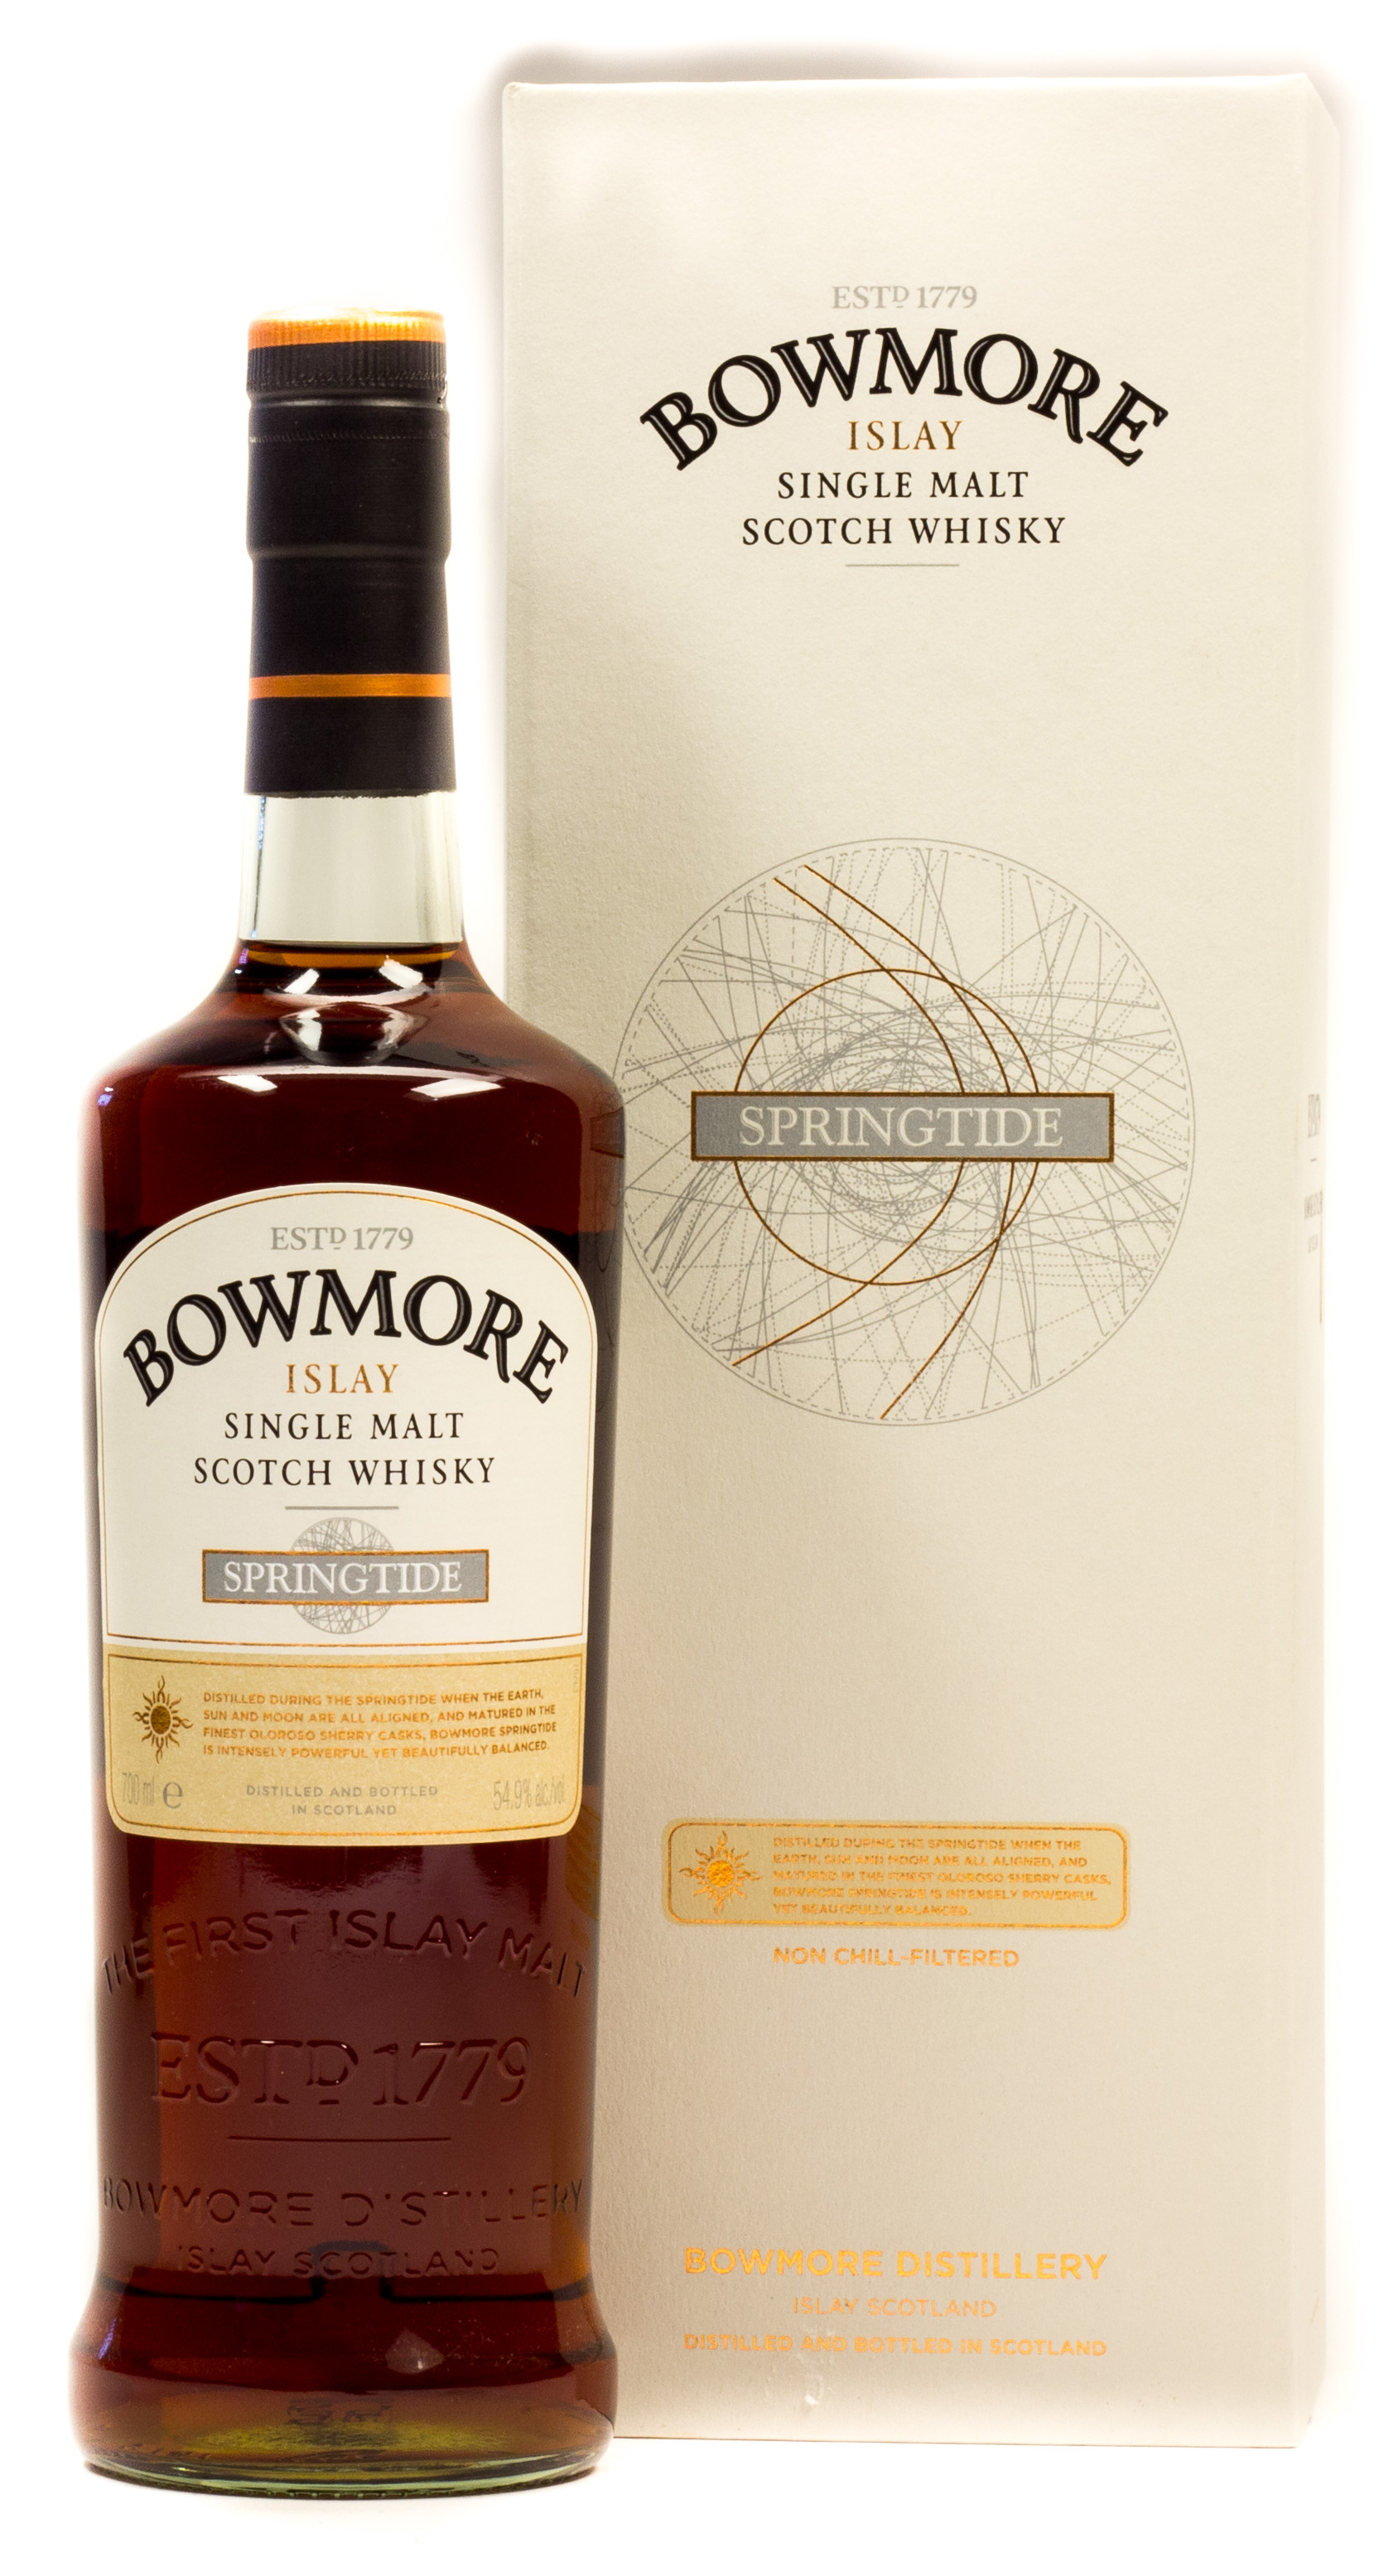 Bowmore Islay Single Malt Scotch Whisky Springtide 0,7 l